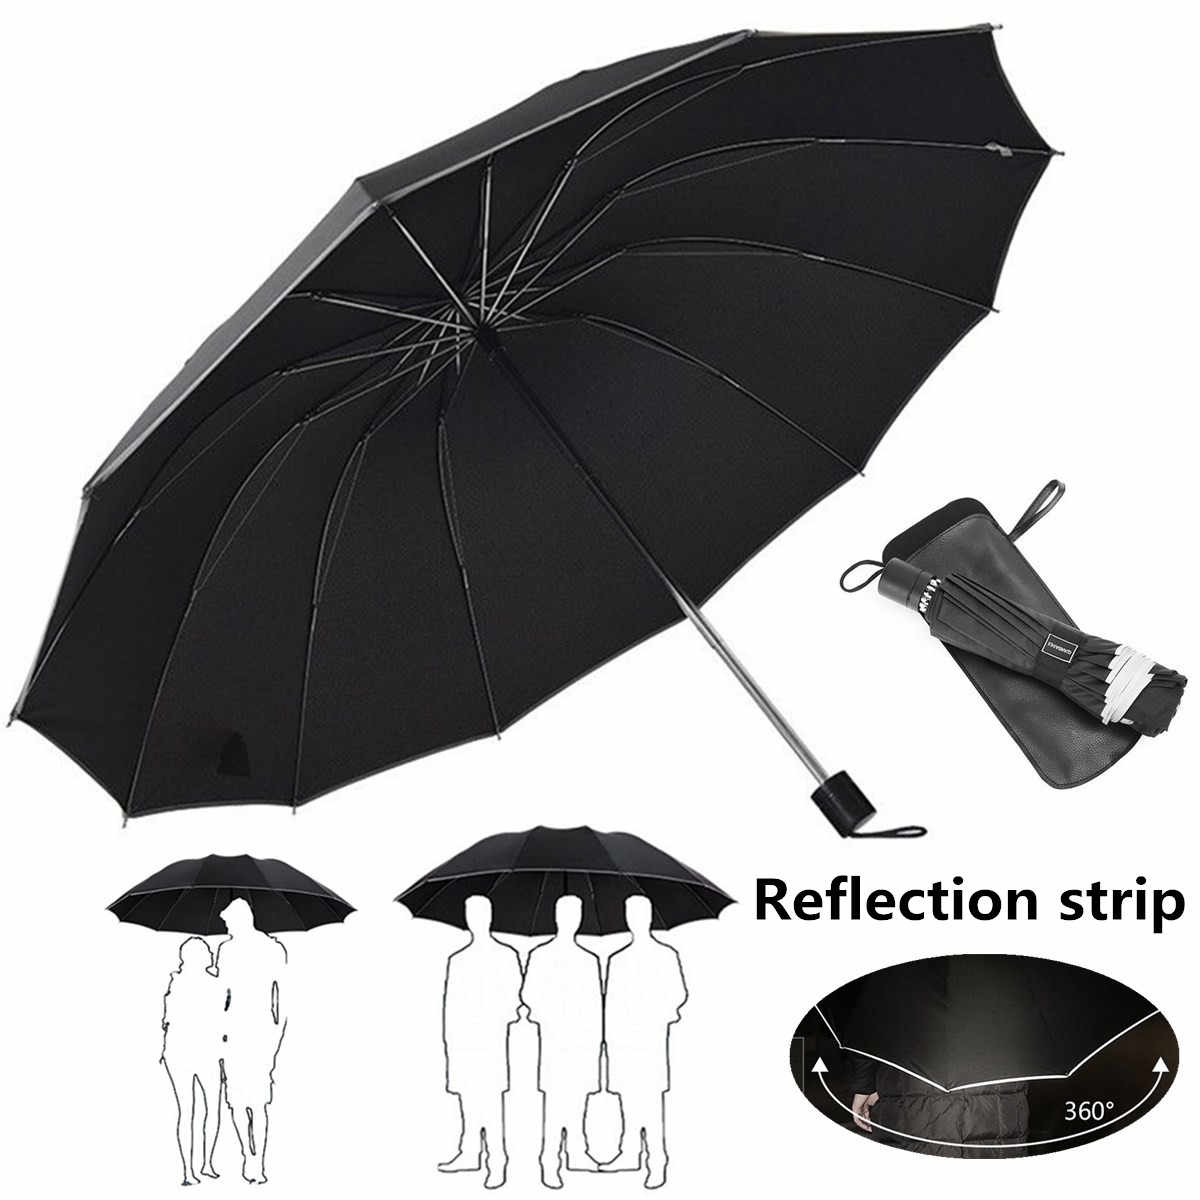 0ca214061f74 Detail Feedback Questions about Large Folding Umbrella Men Rain ...